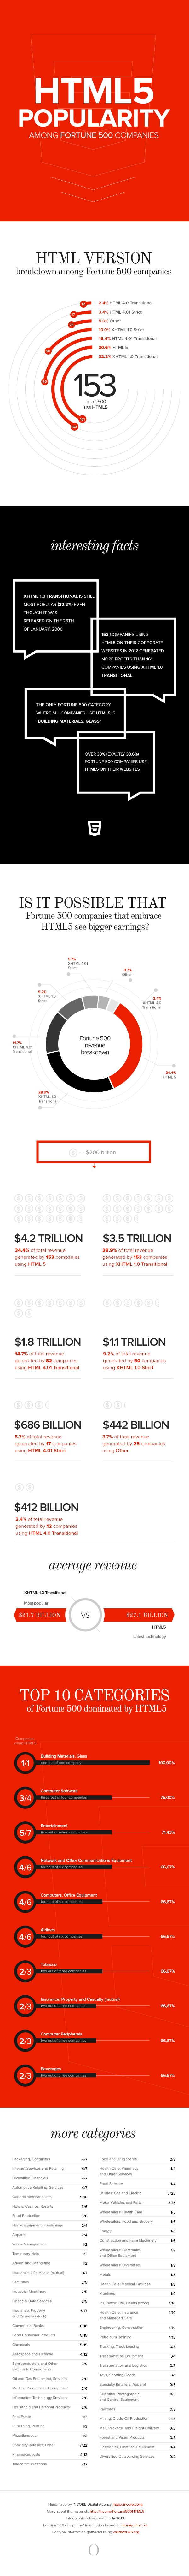 Why Fortune 500 Companies Uses HTML5: Some Interesting Facts [Infographic]